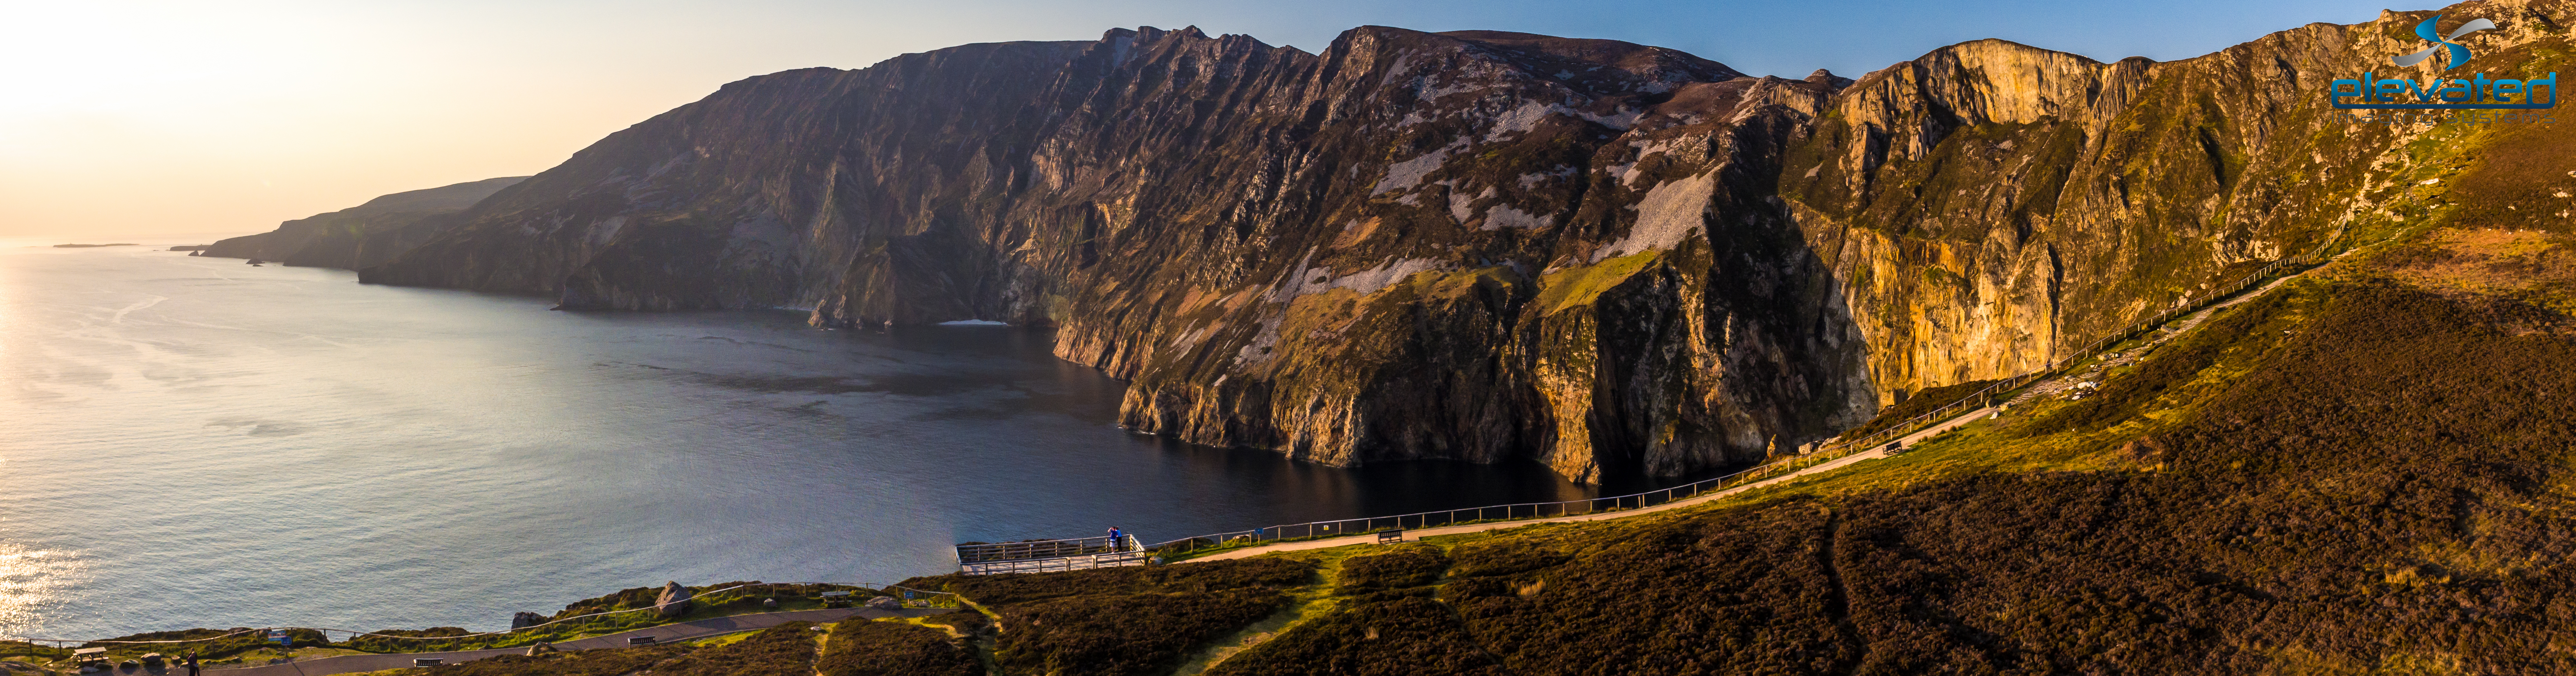 Slieve League County Donegal Ireland